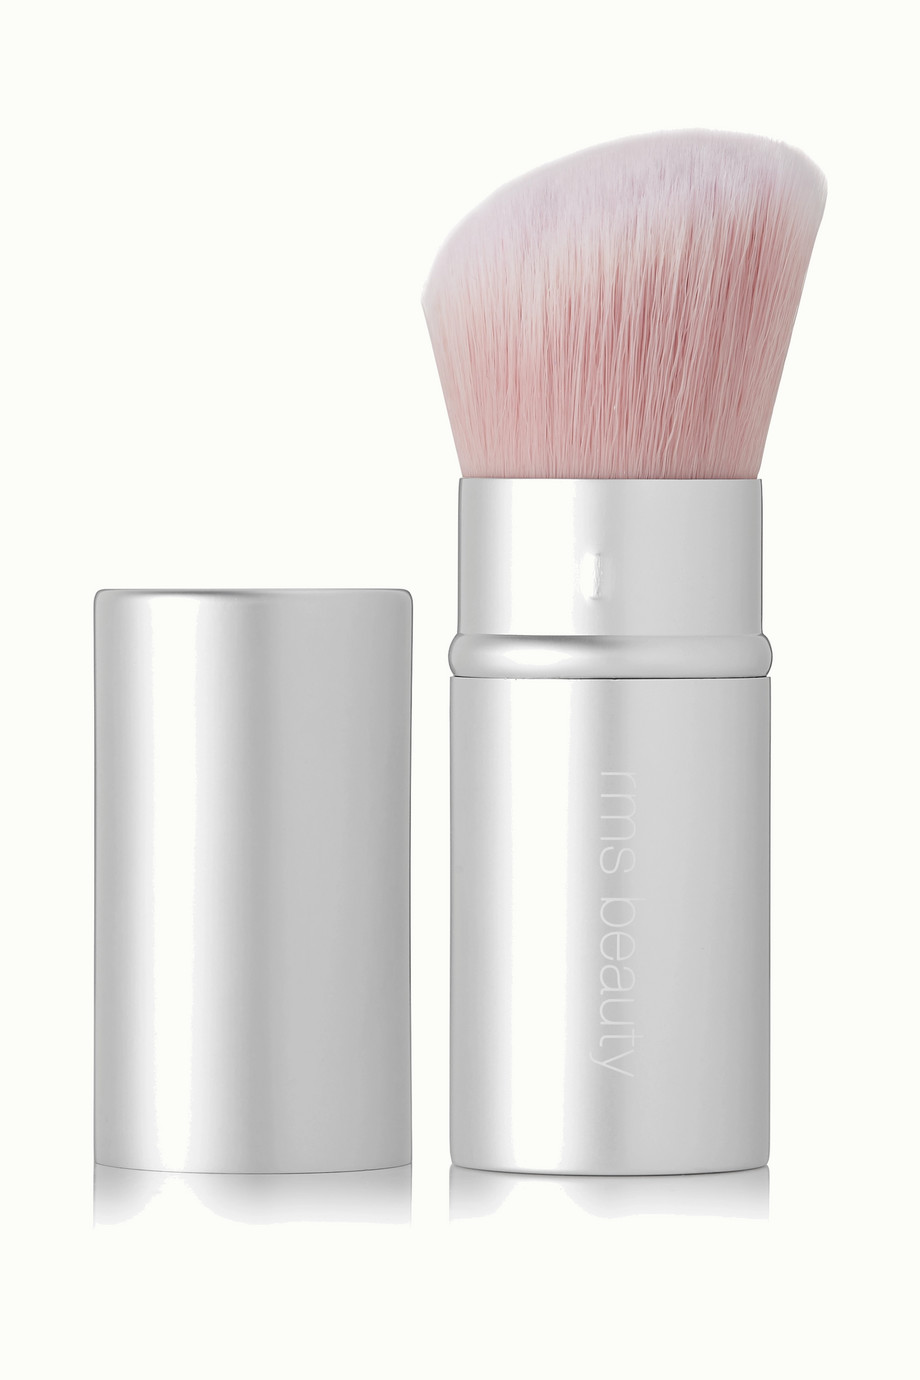 RMS Beauty Retractable Luminizing Powder Brush